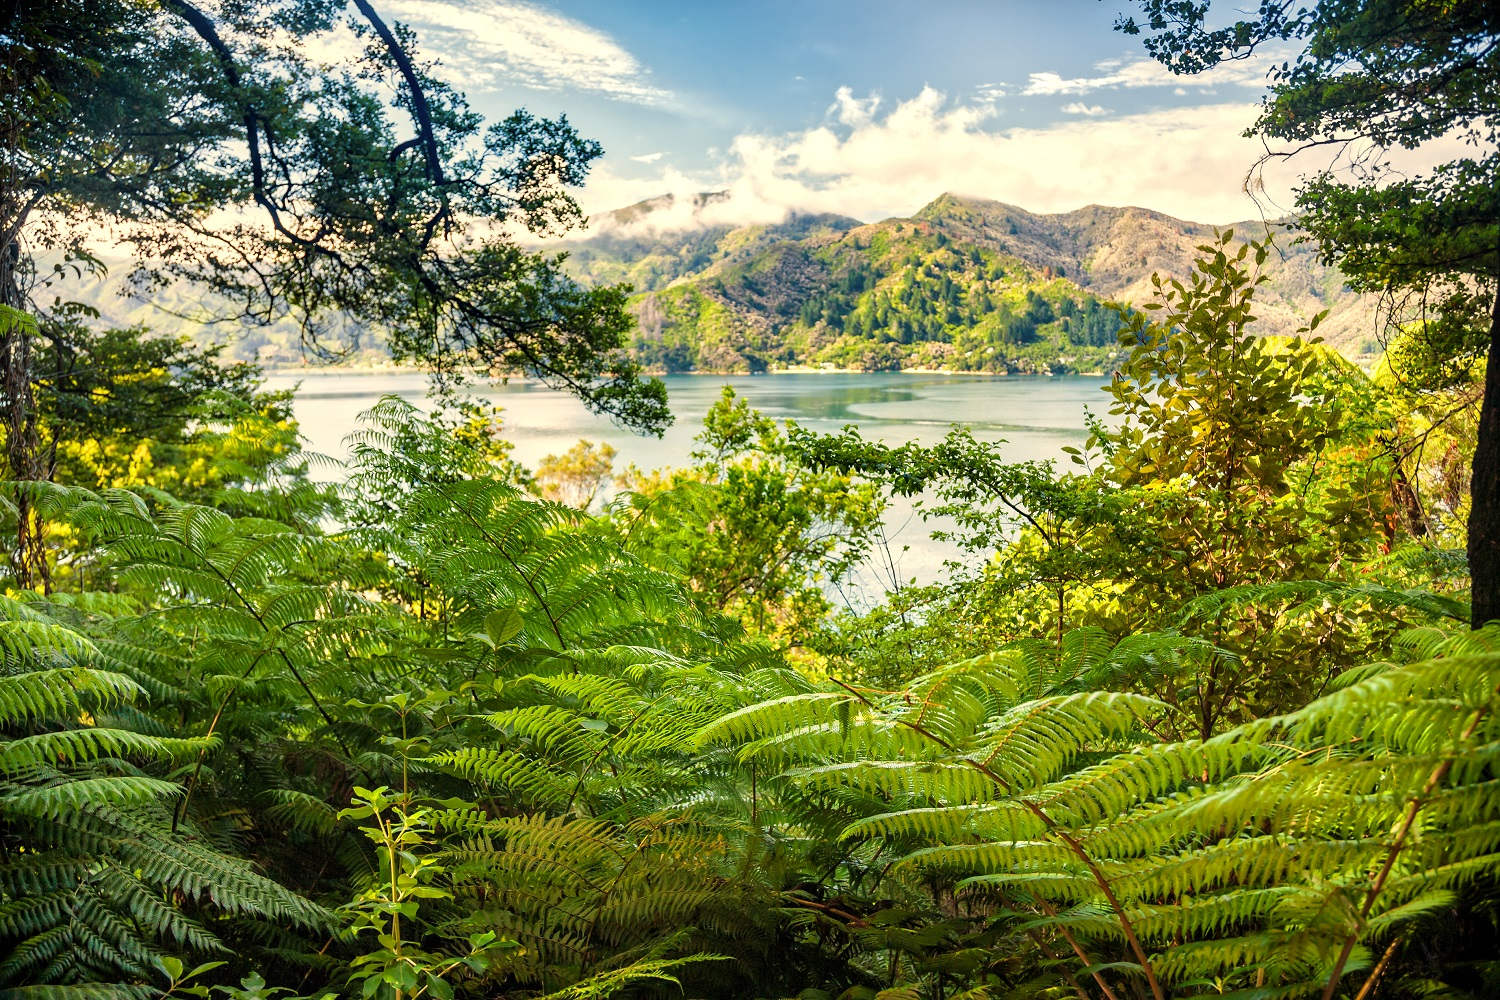 Queen Charlotte Track view, New Zealand